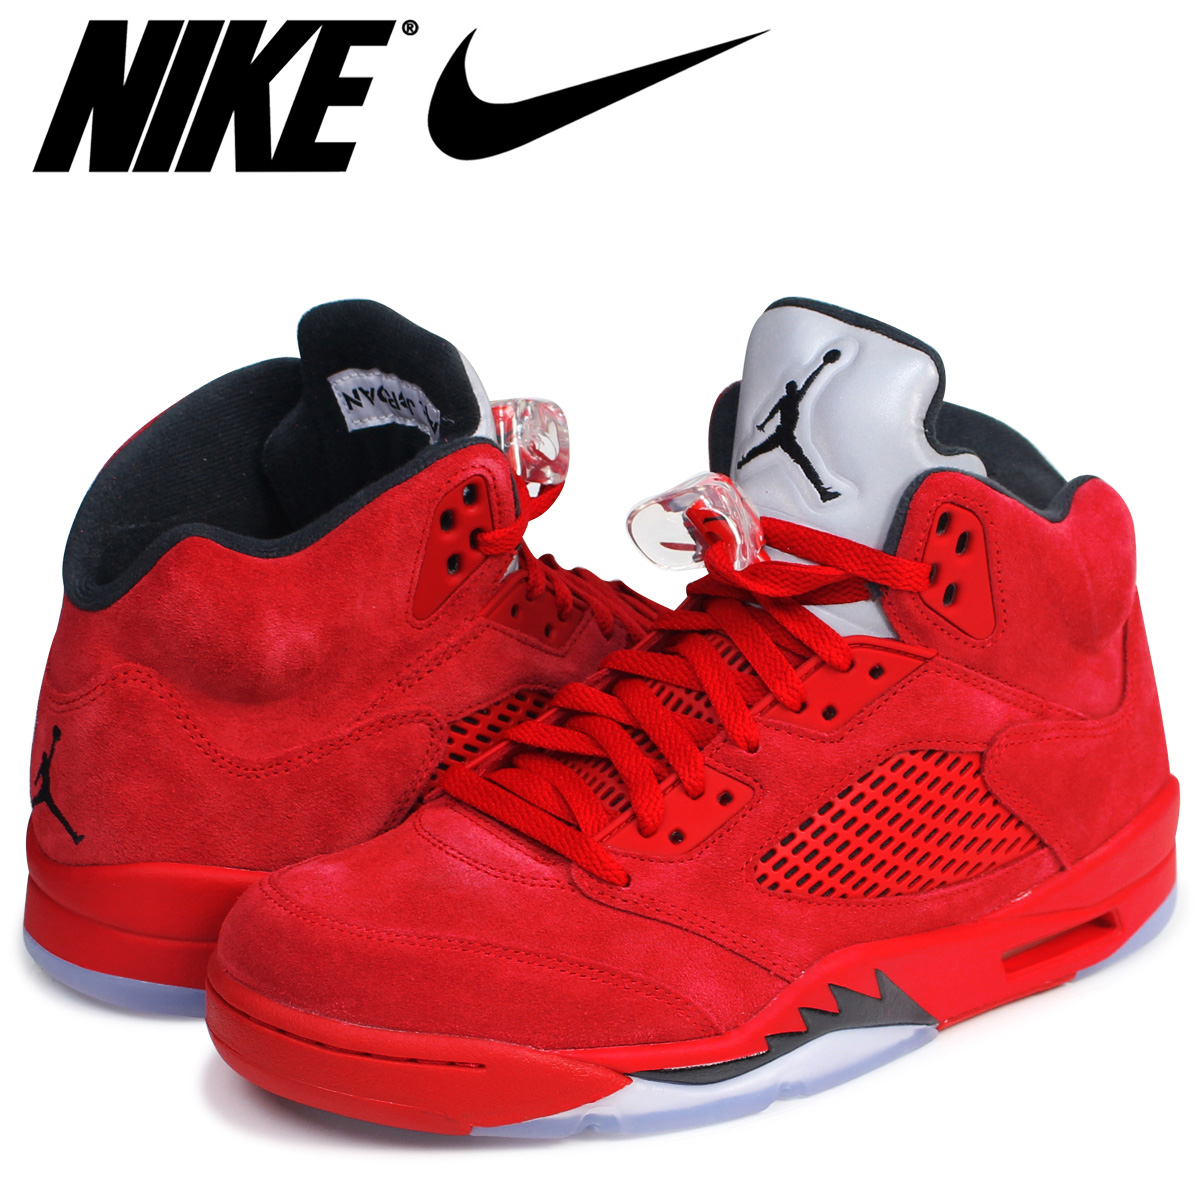 a623d7387c0 Sugar Online Shop: NIKE Nike Air Jordan sneakers AIR JORDAN 5 RETRO Air  Jordan 5 nostalgic 136,027-602 men's shoes red red | Rakuten Global Market